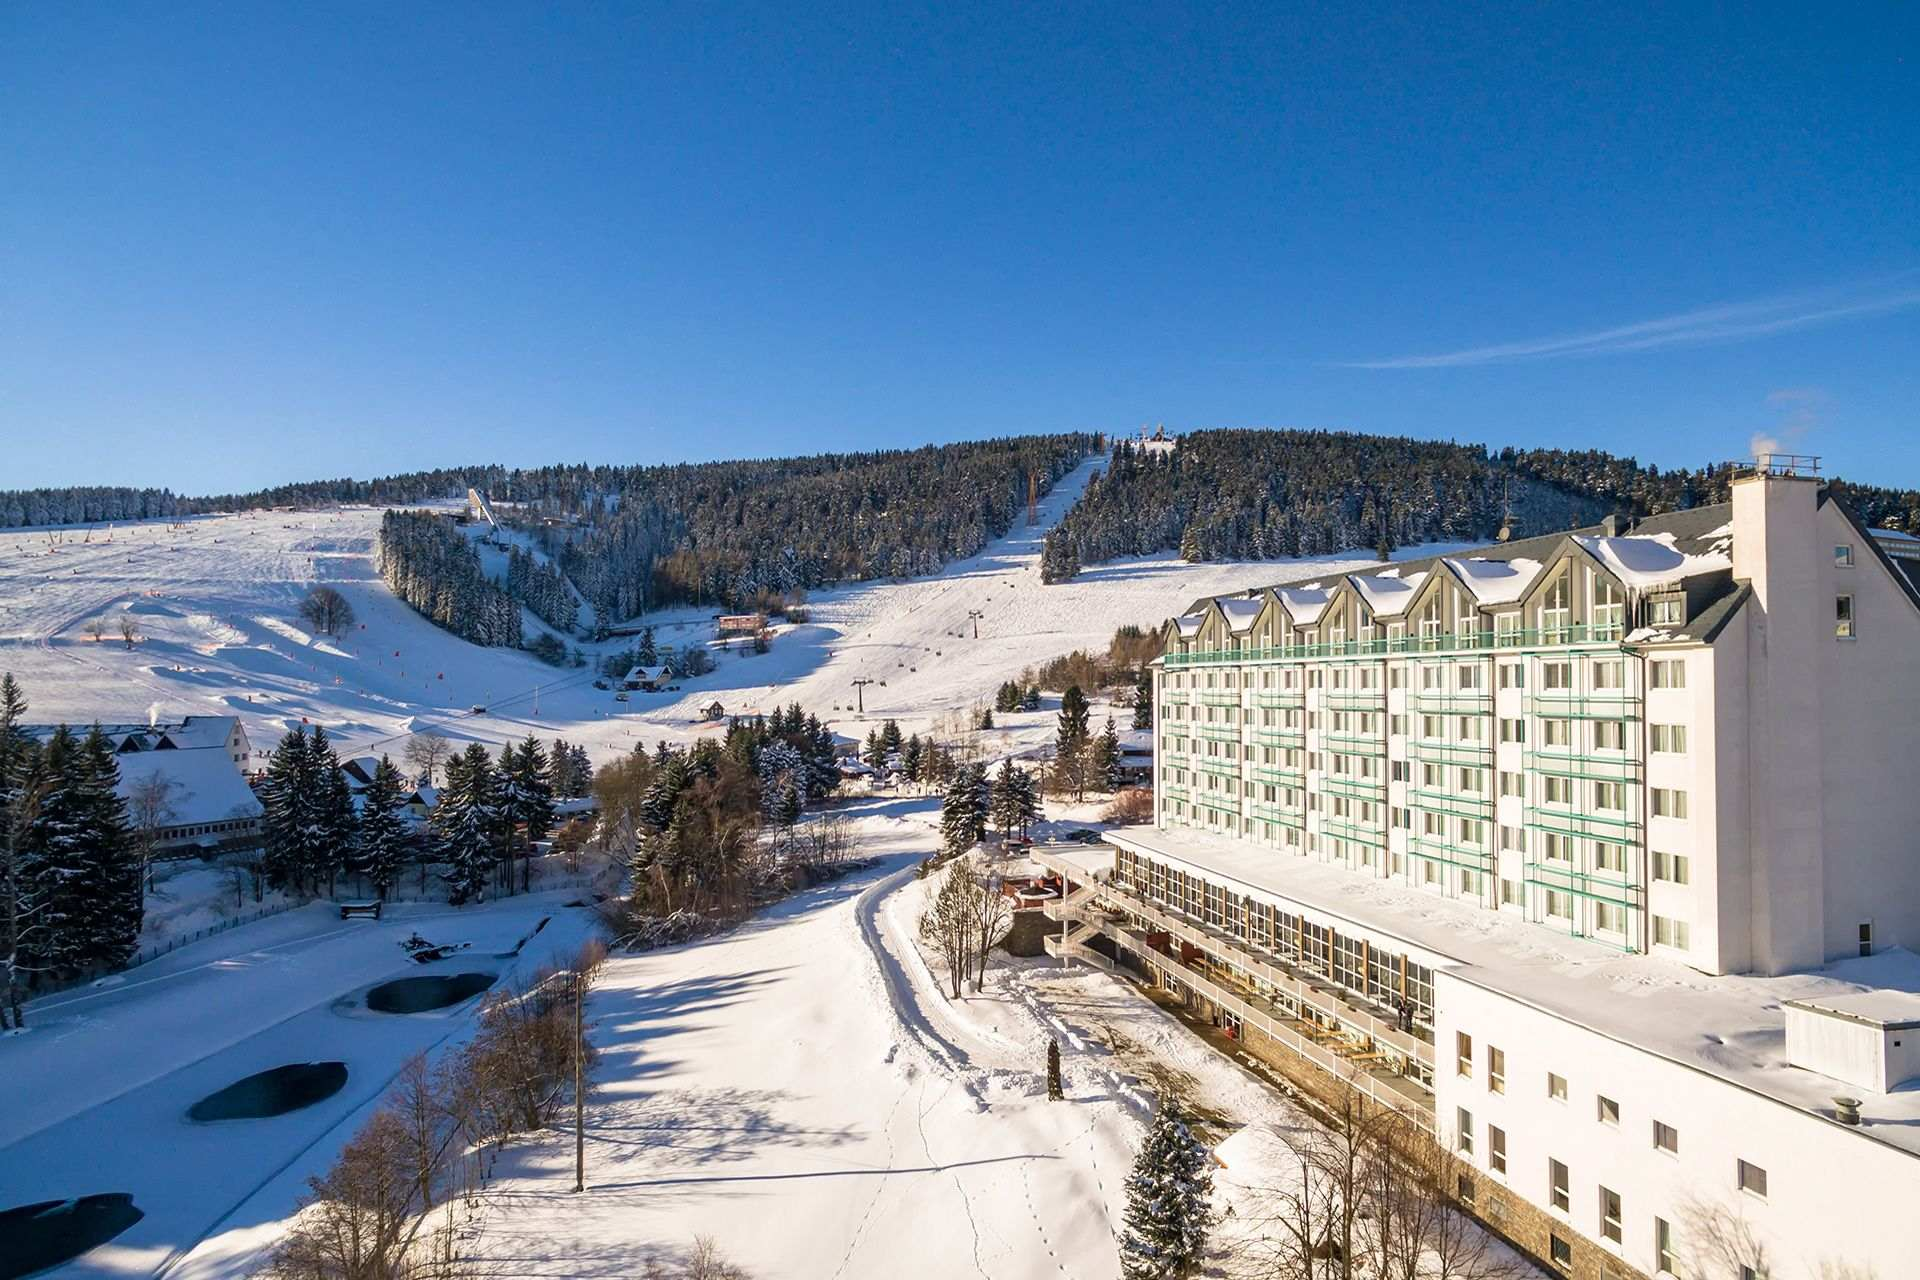 Wetter Oberwiesenthal 14 Tage